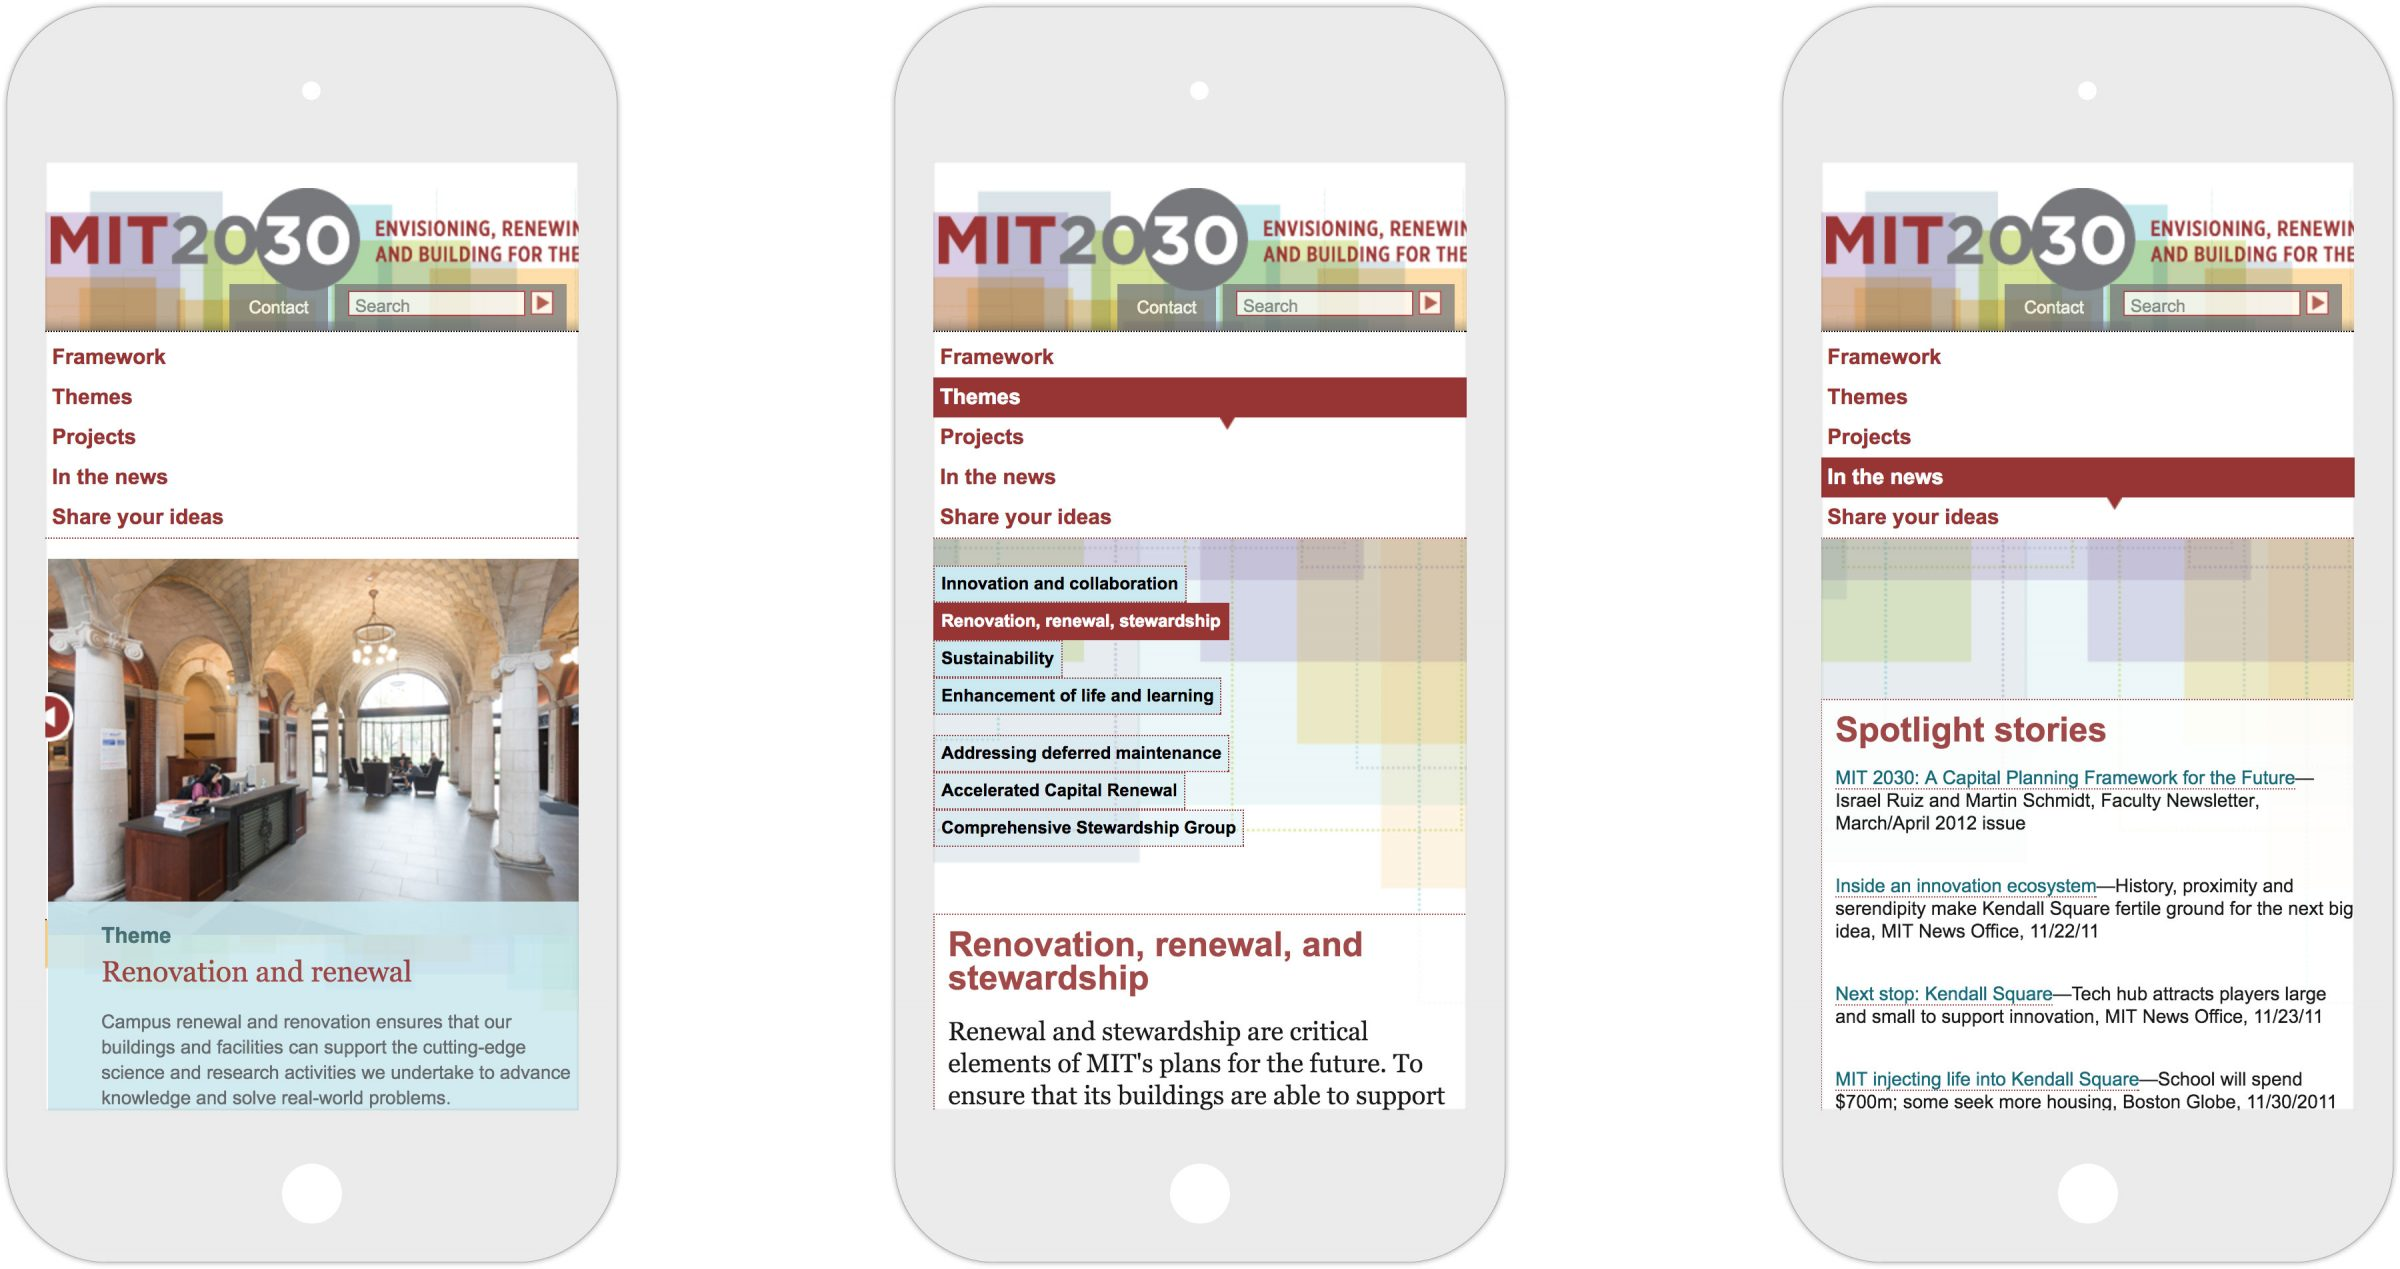 Three views of responsive MIT 2030 website on iPhone